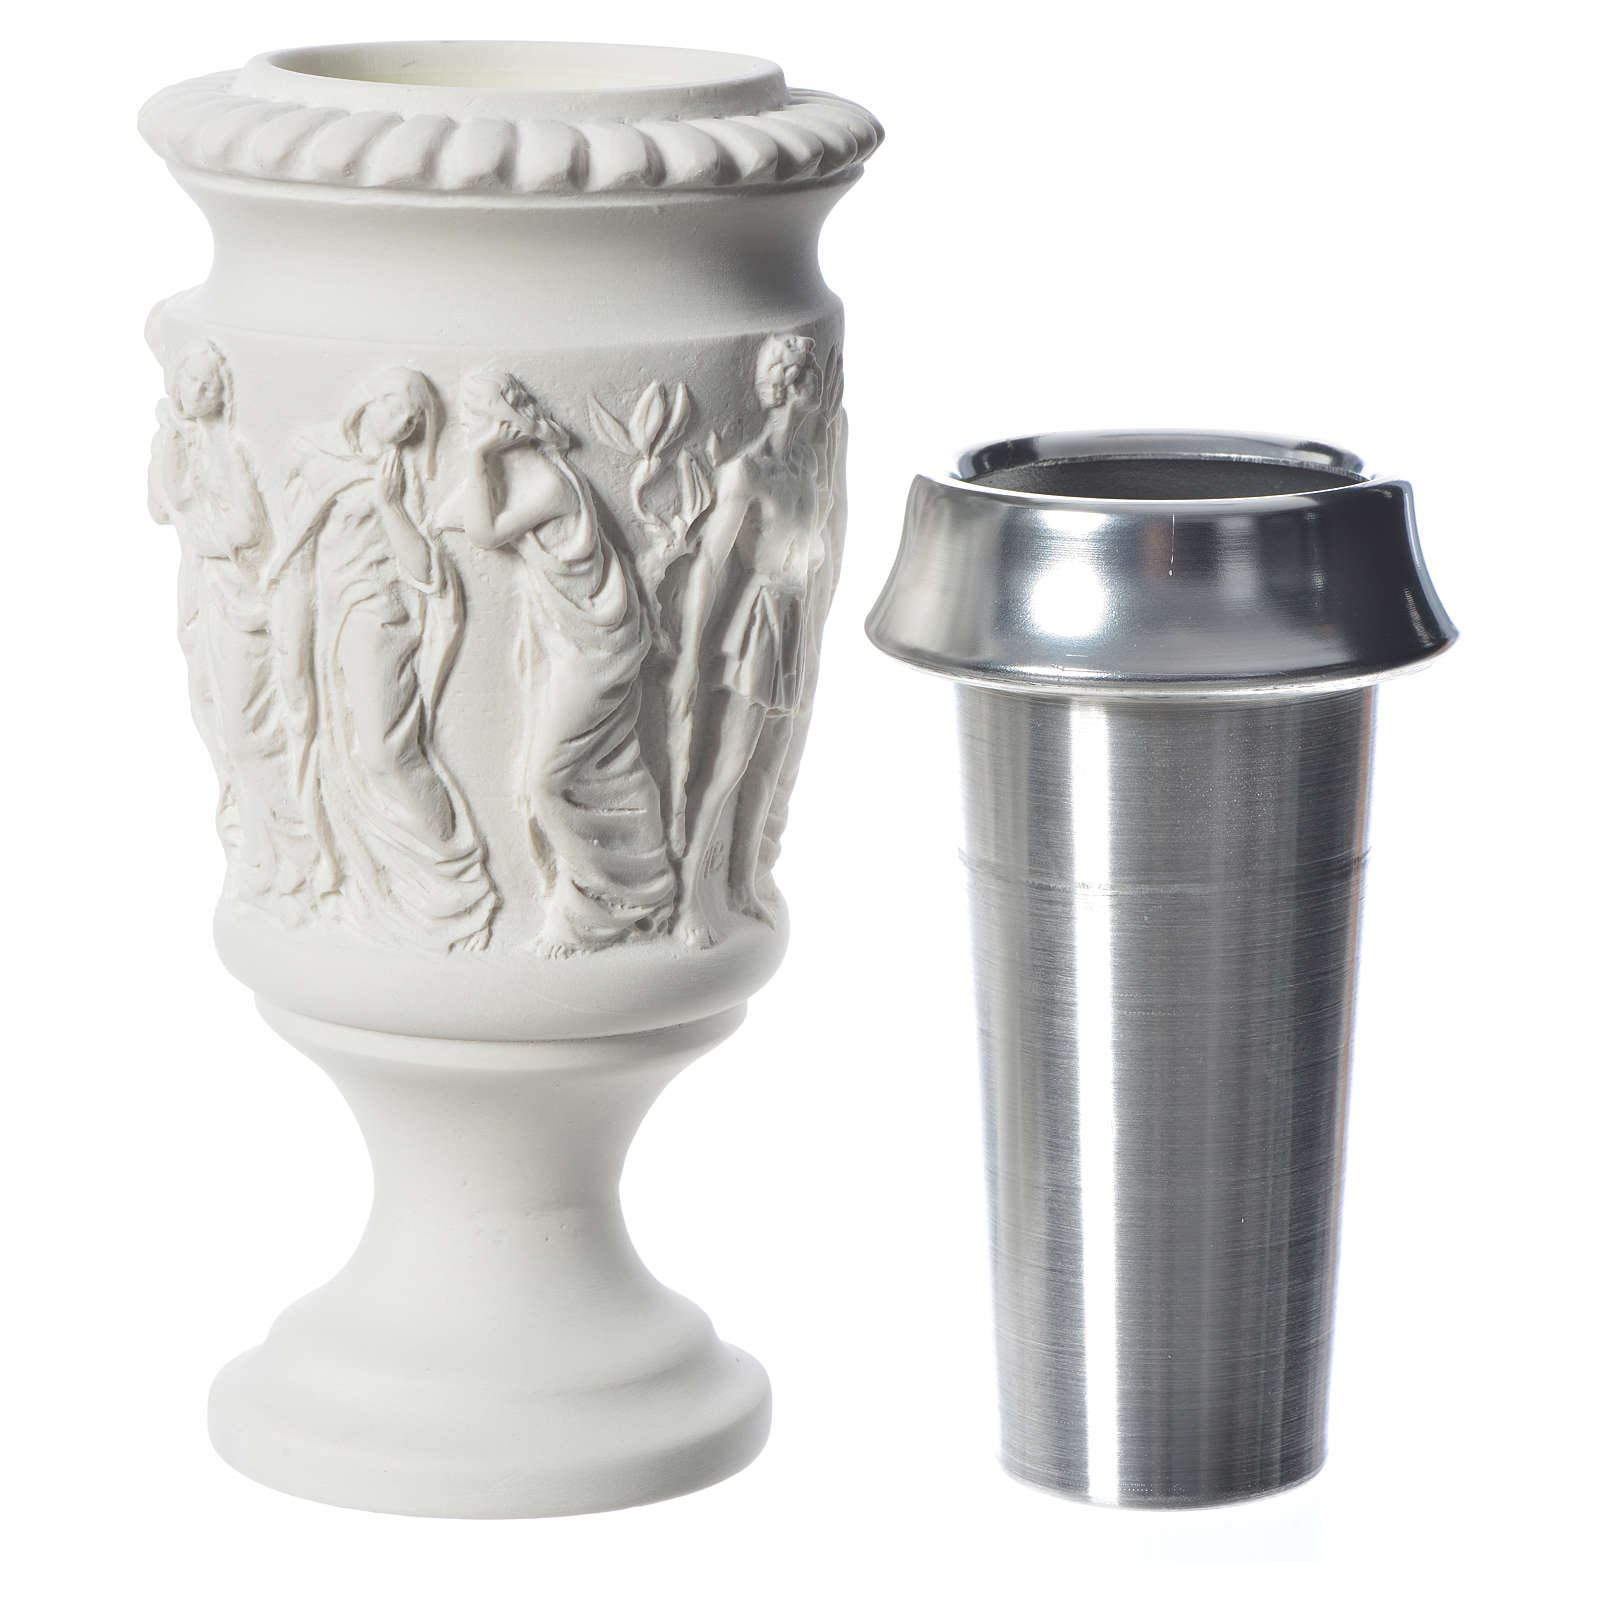 Flower vase in reconstituted marble, stations of the cross 3